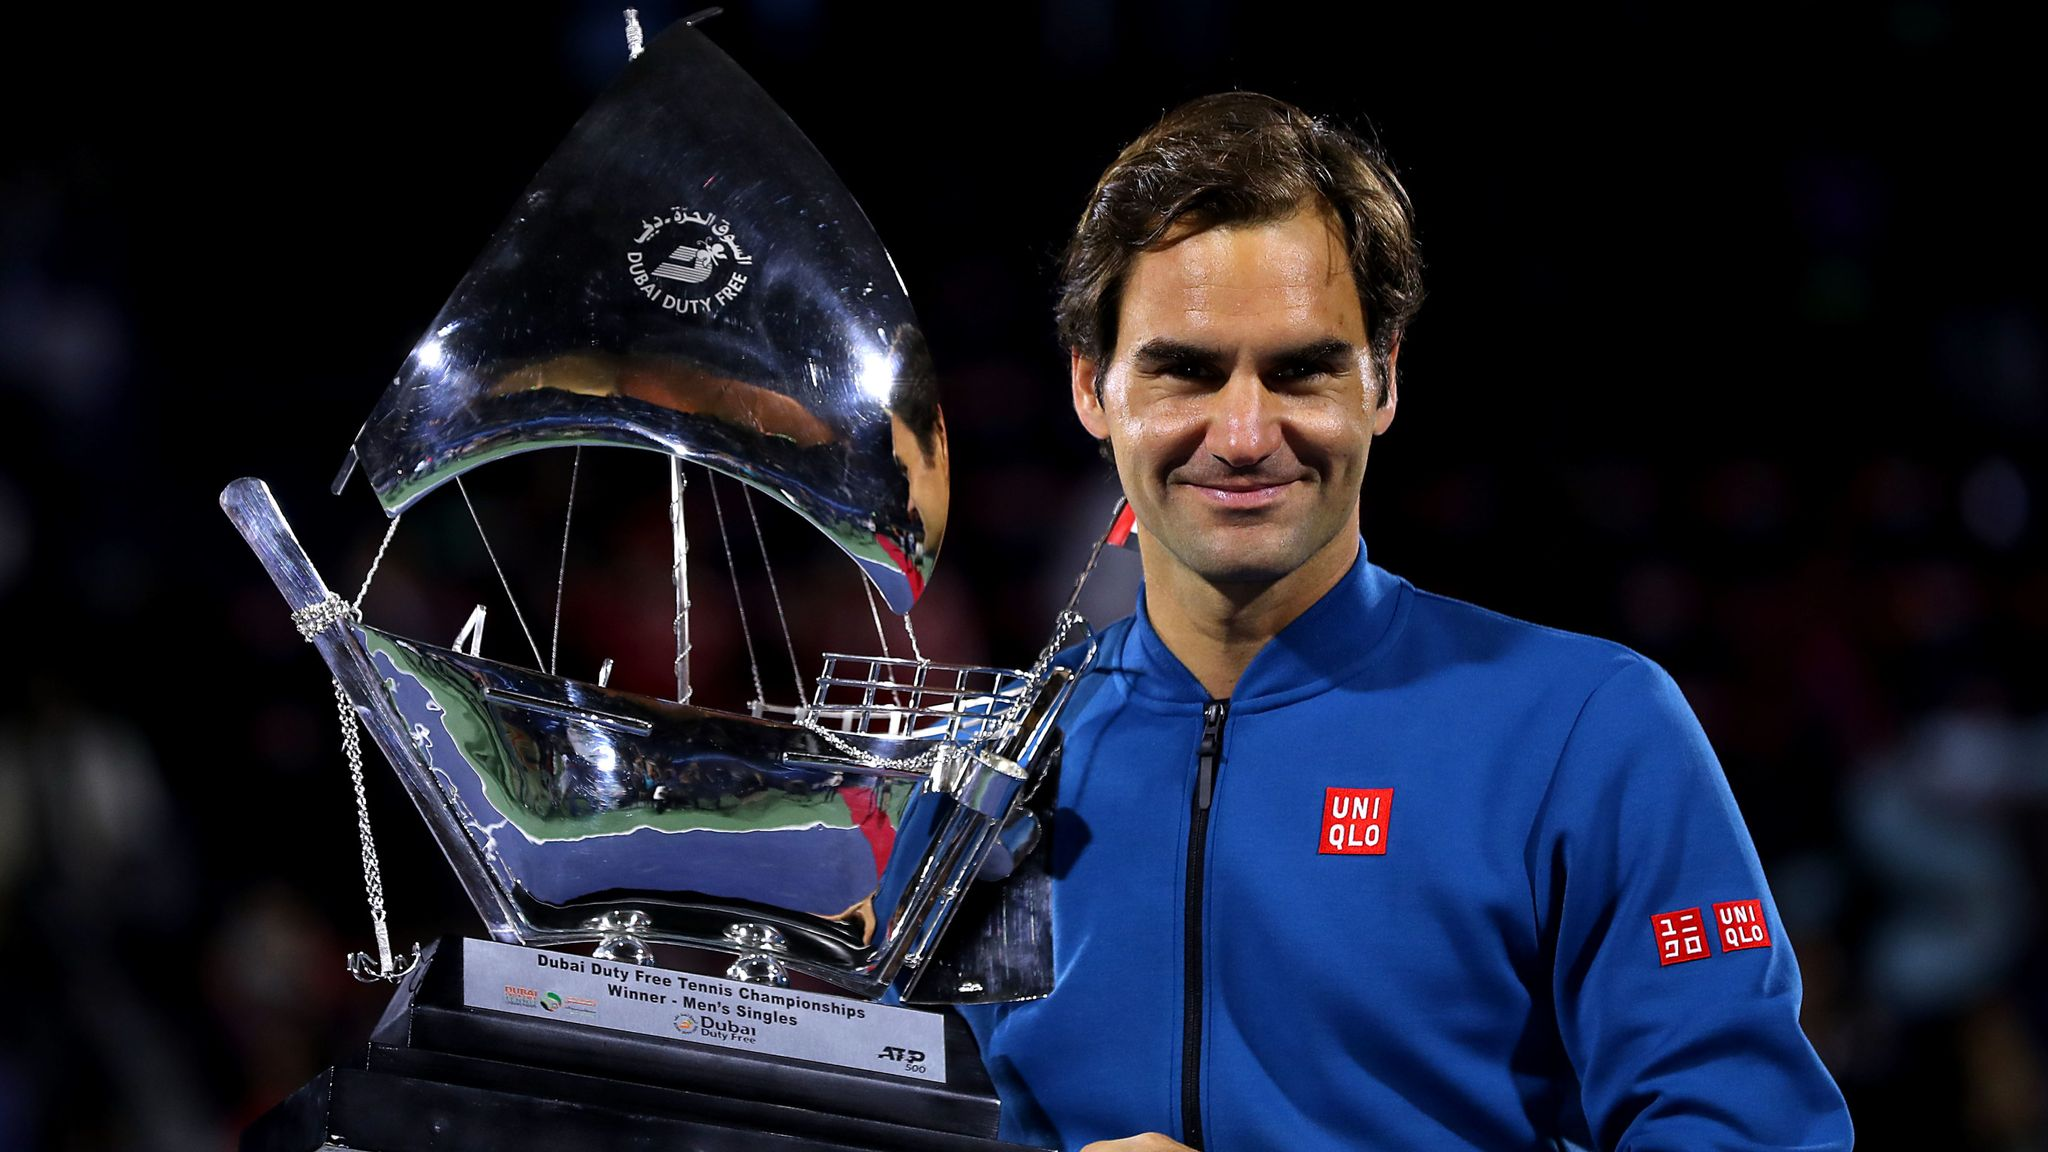 Roger Federer can break Jimmy Connors' mark of 109 titles, says